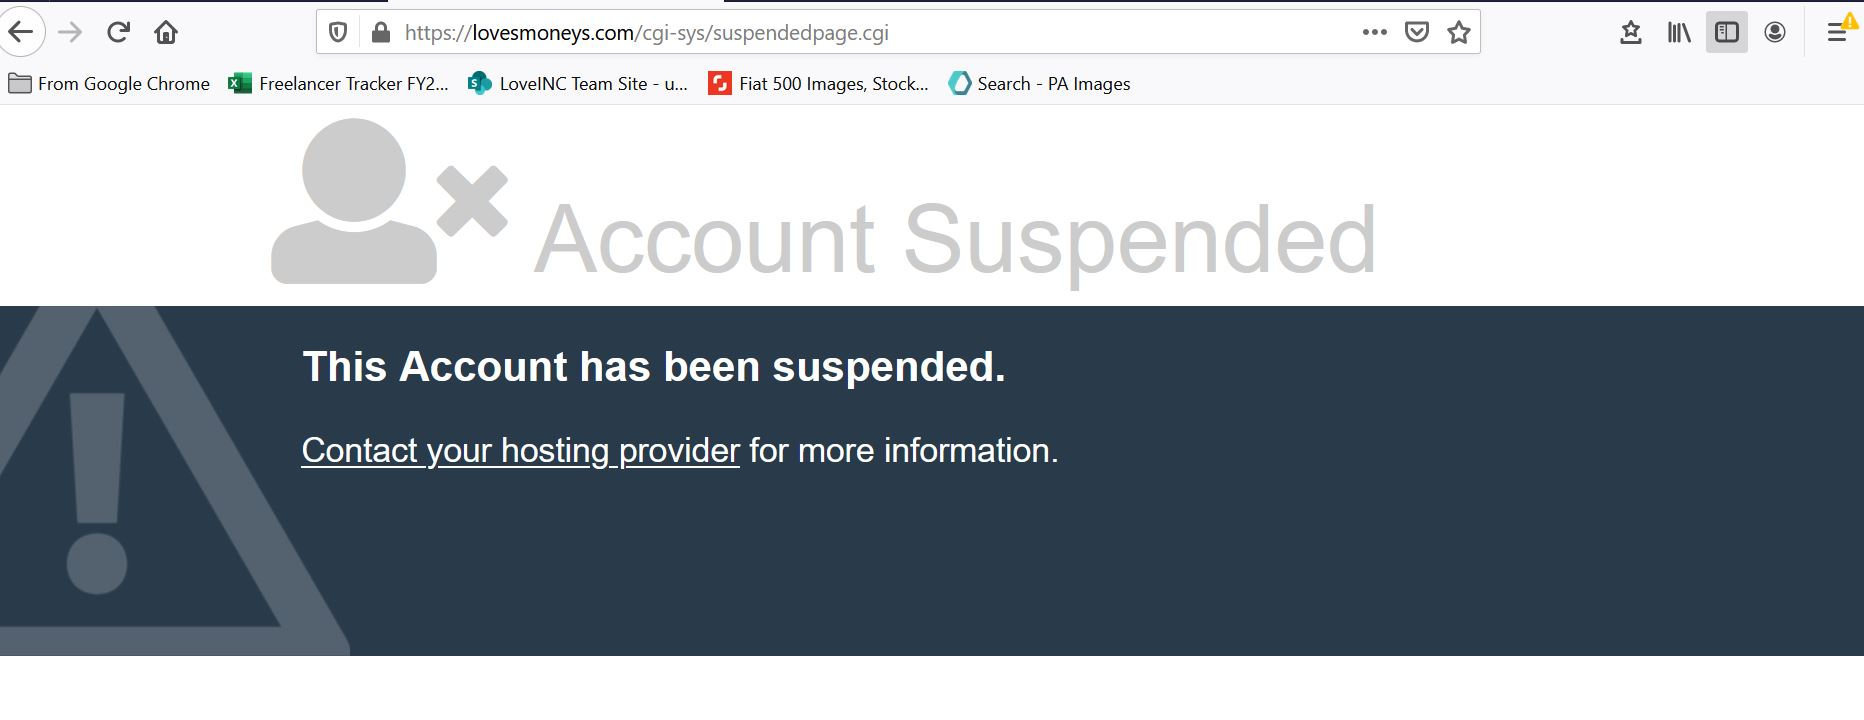 Suspended scam website (Image: loveMONEY)